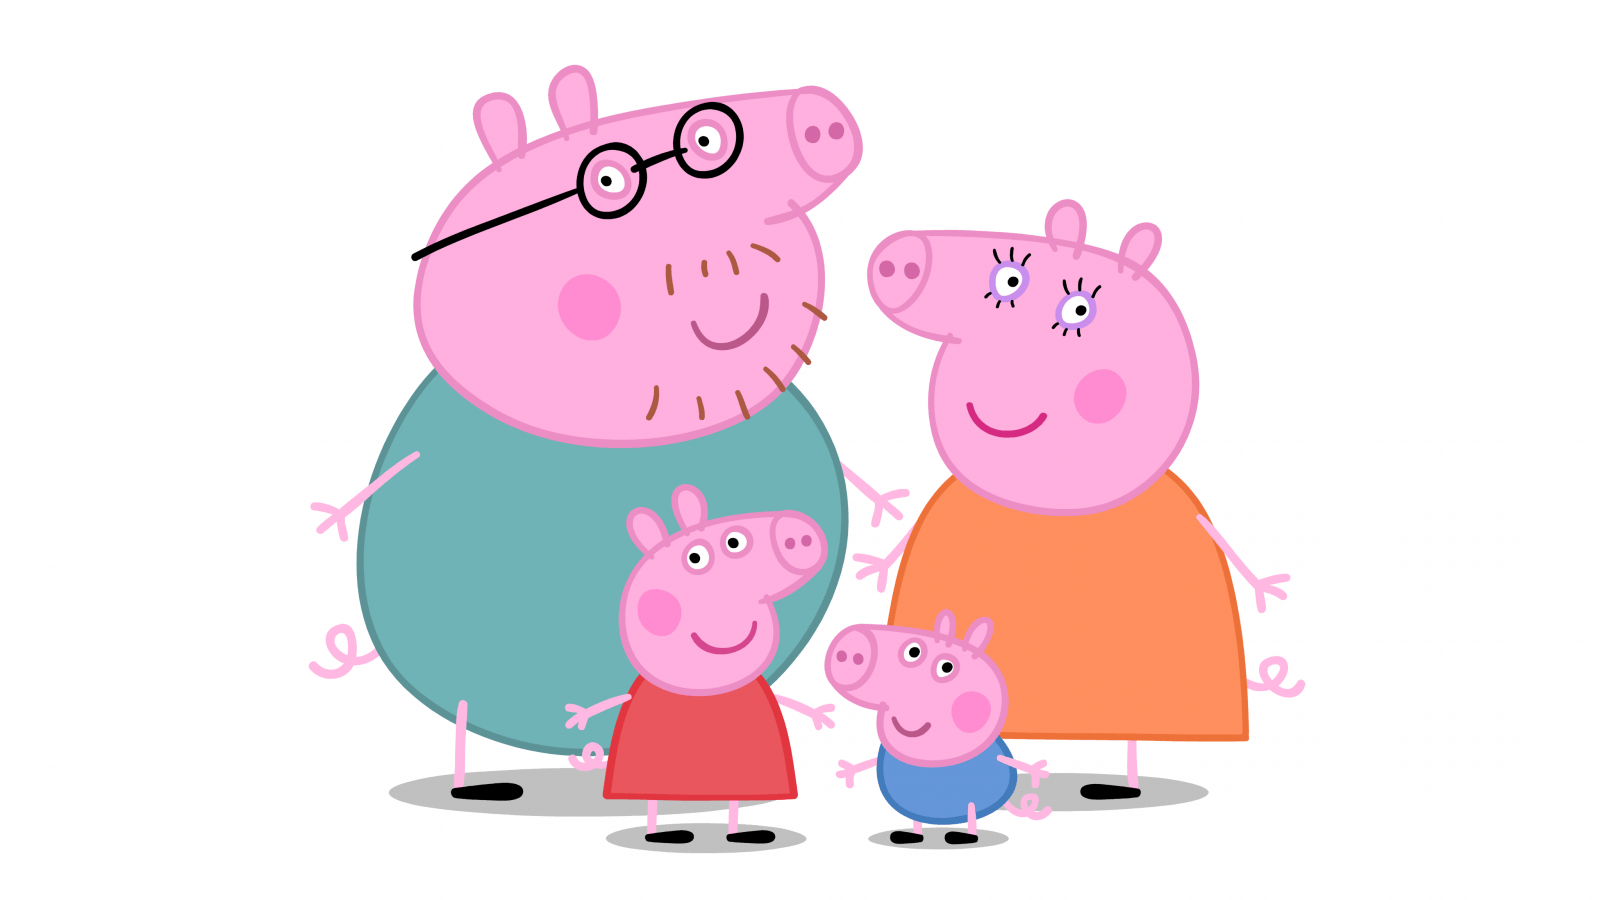 Peppa Pig Wallpapers - Wallpaper Cave